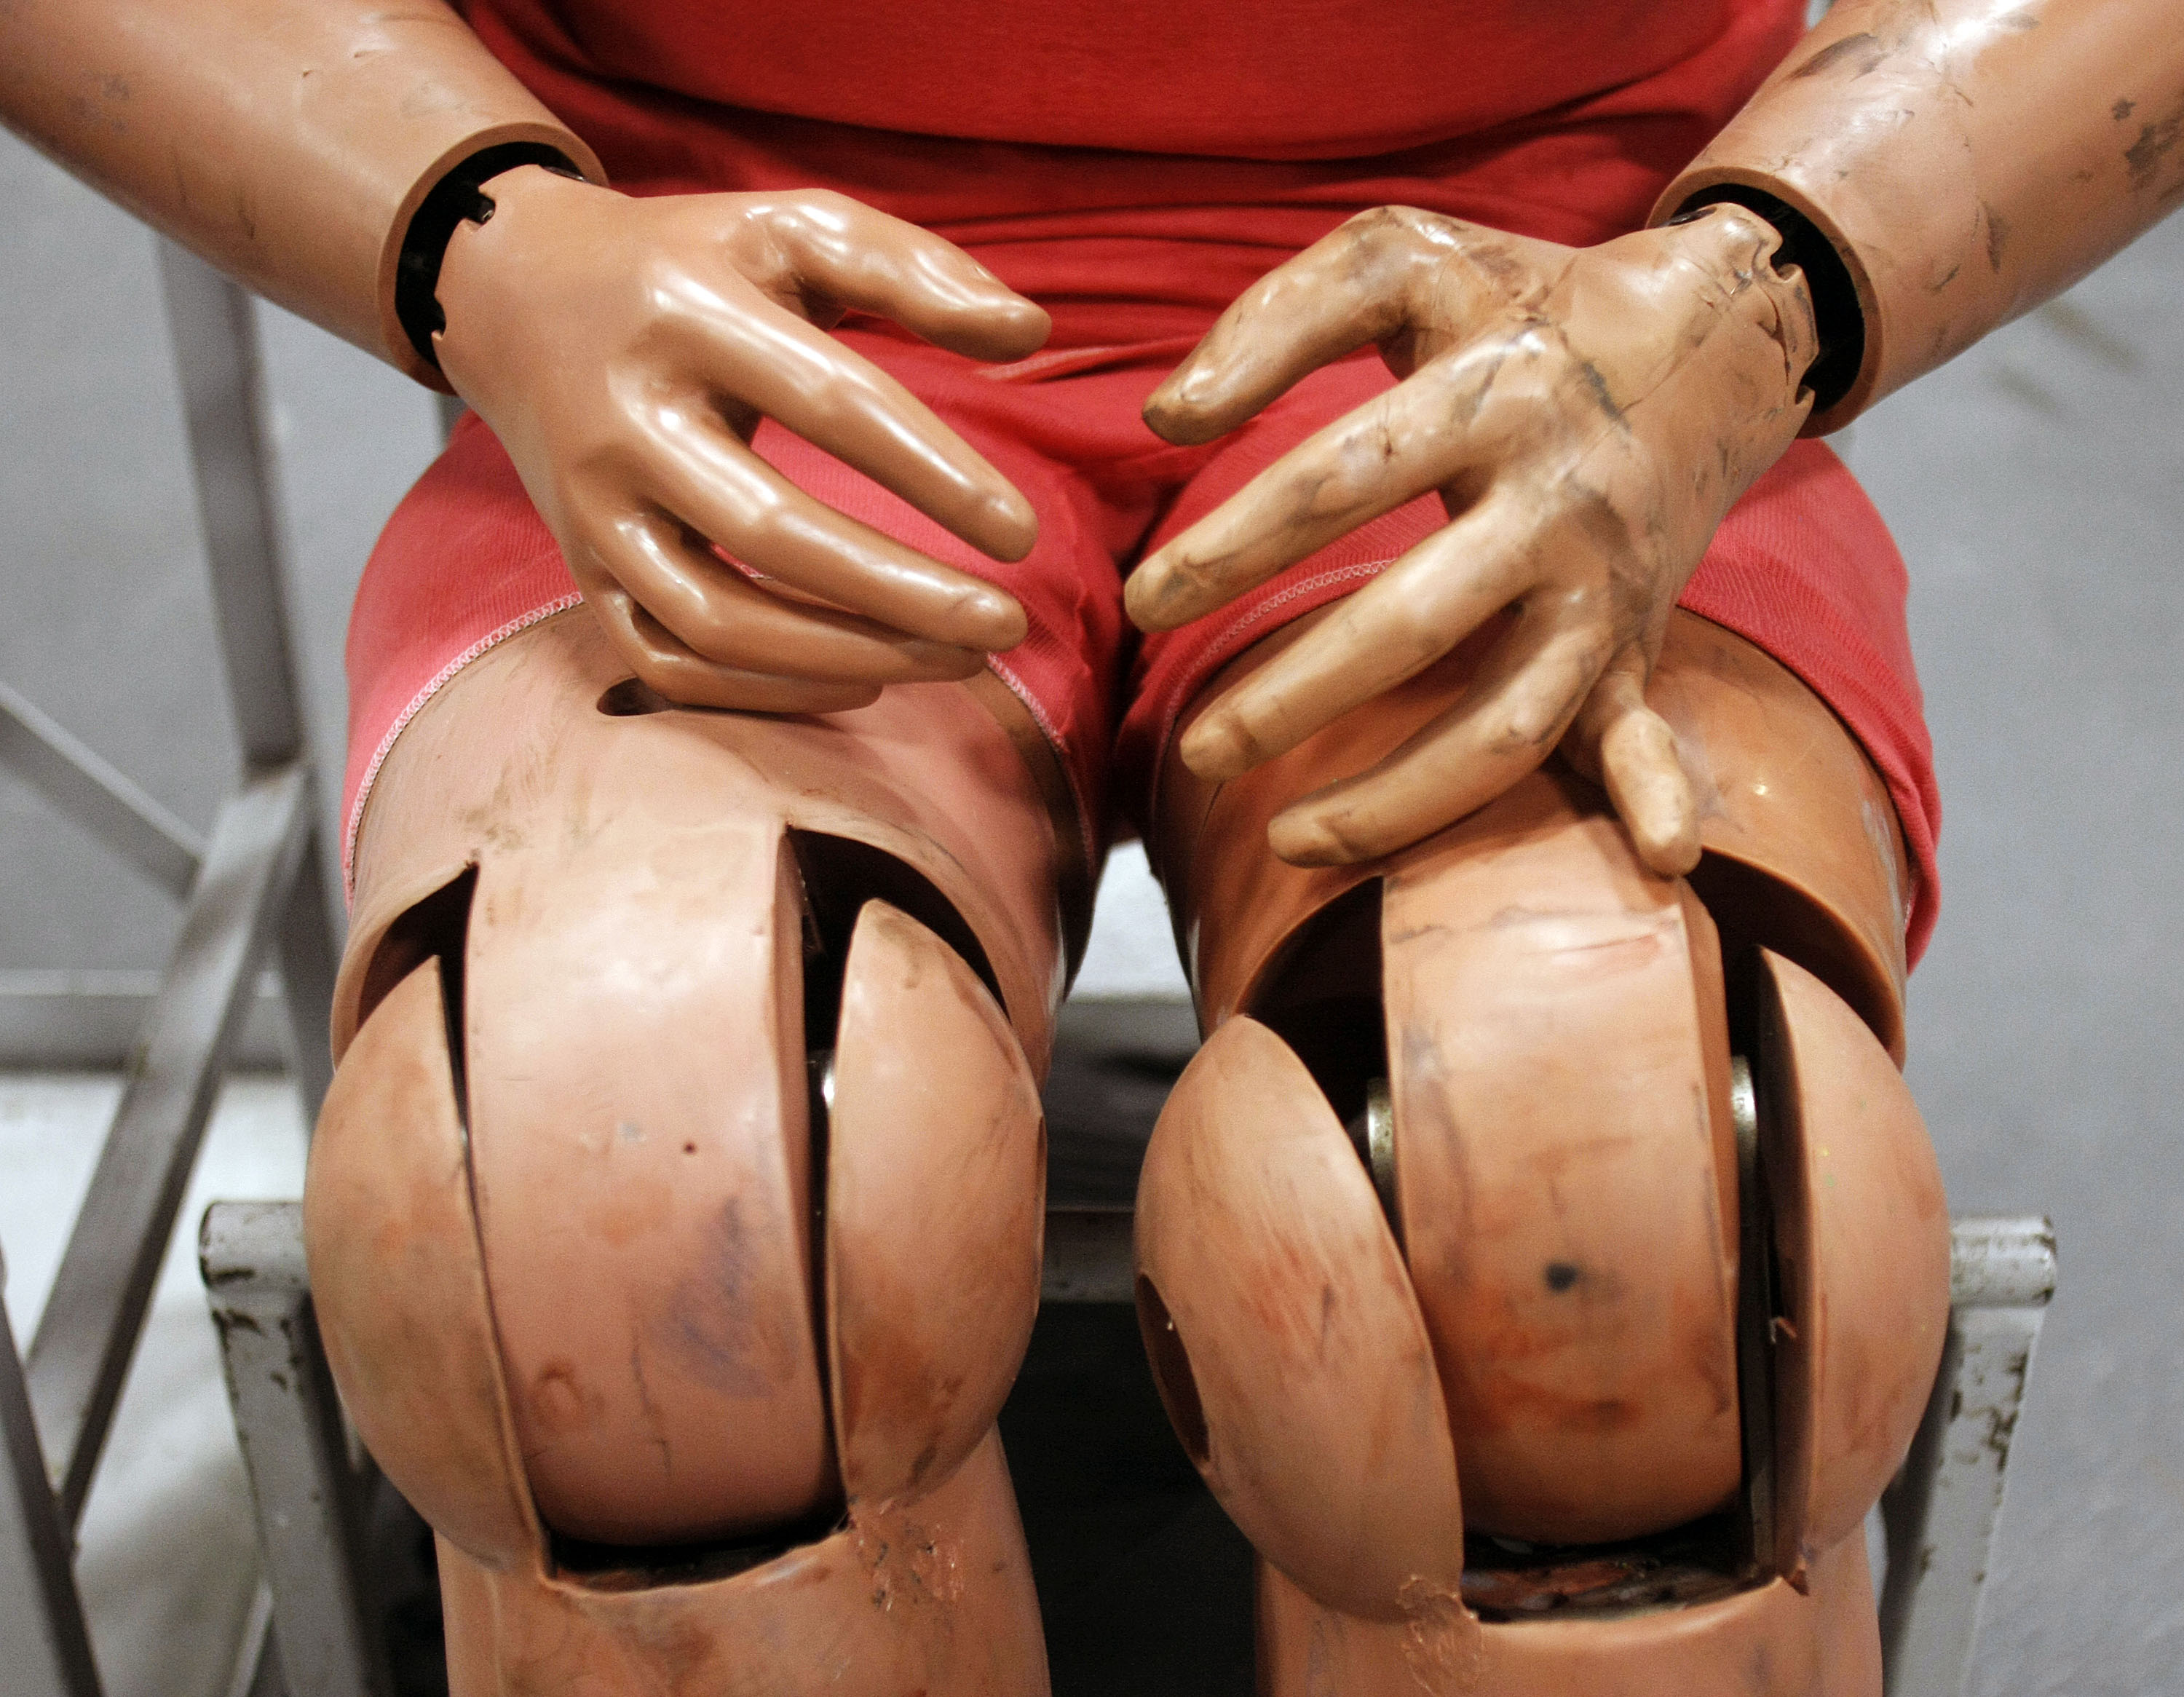 A Ford crash test dummy is shown at the Crash Barrier Dearborn Development Center March 10, 2014 in Dearborn, Michigan.